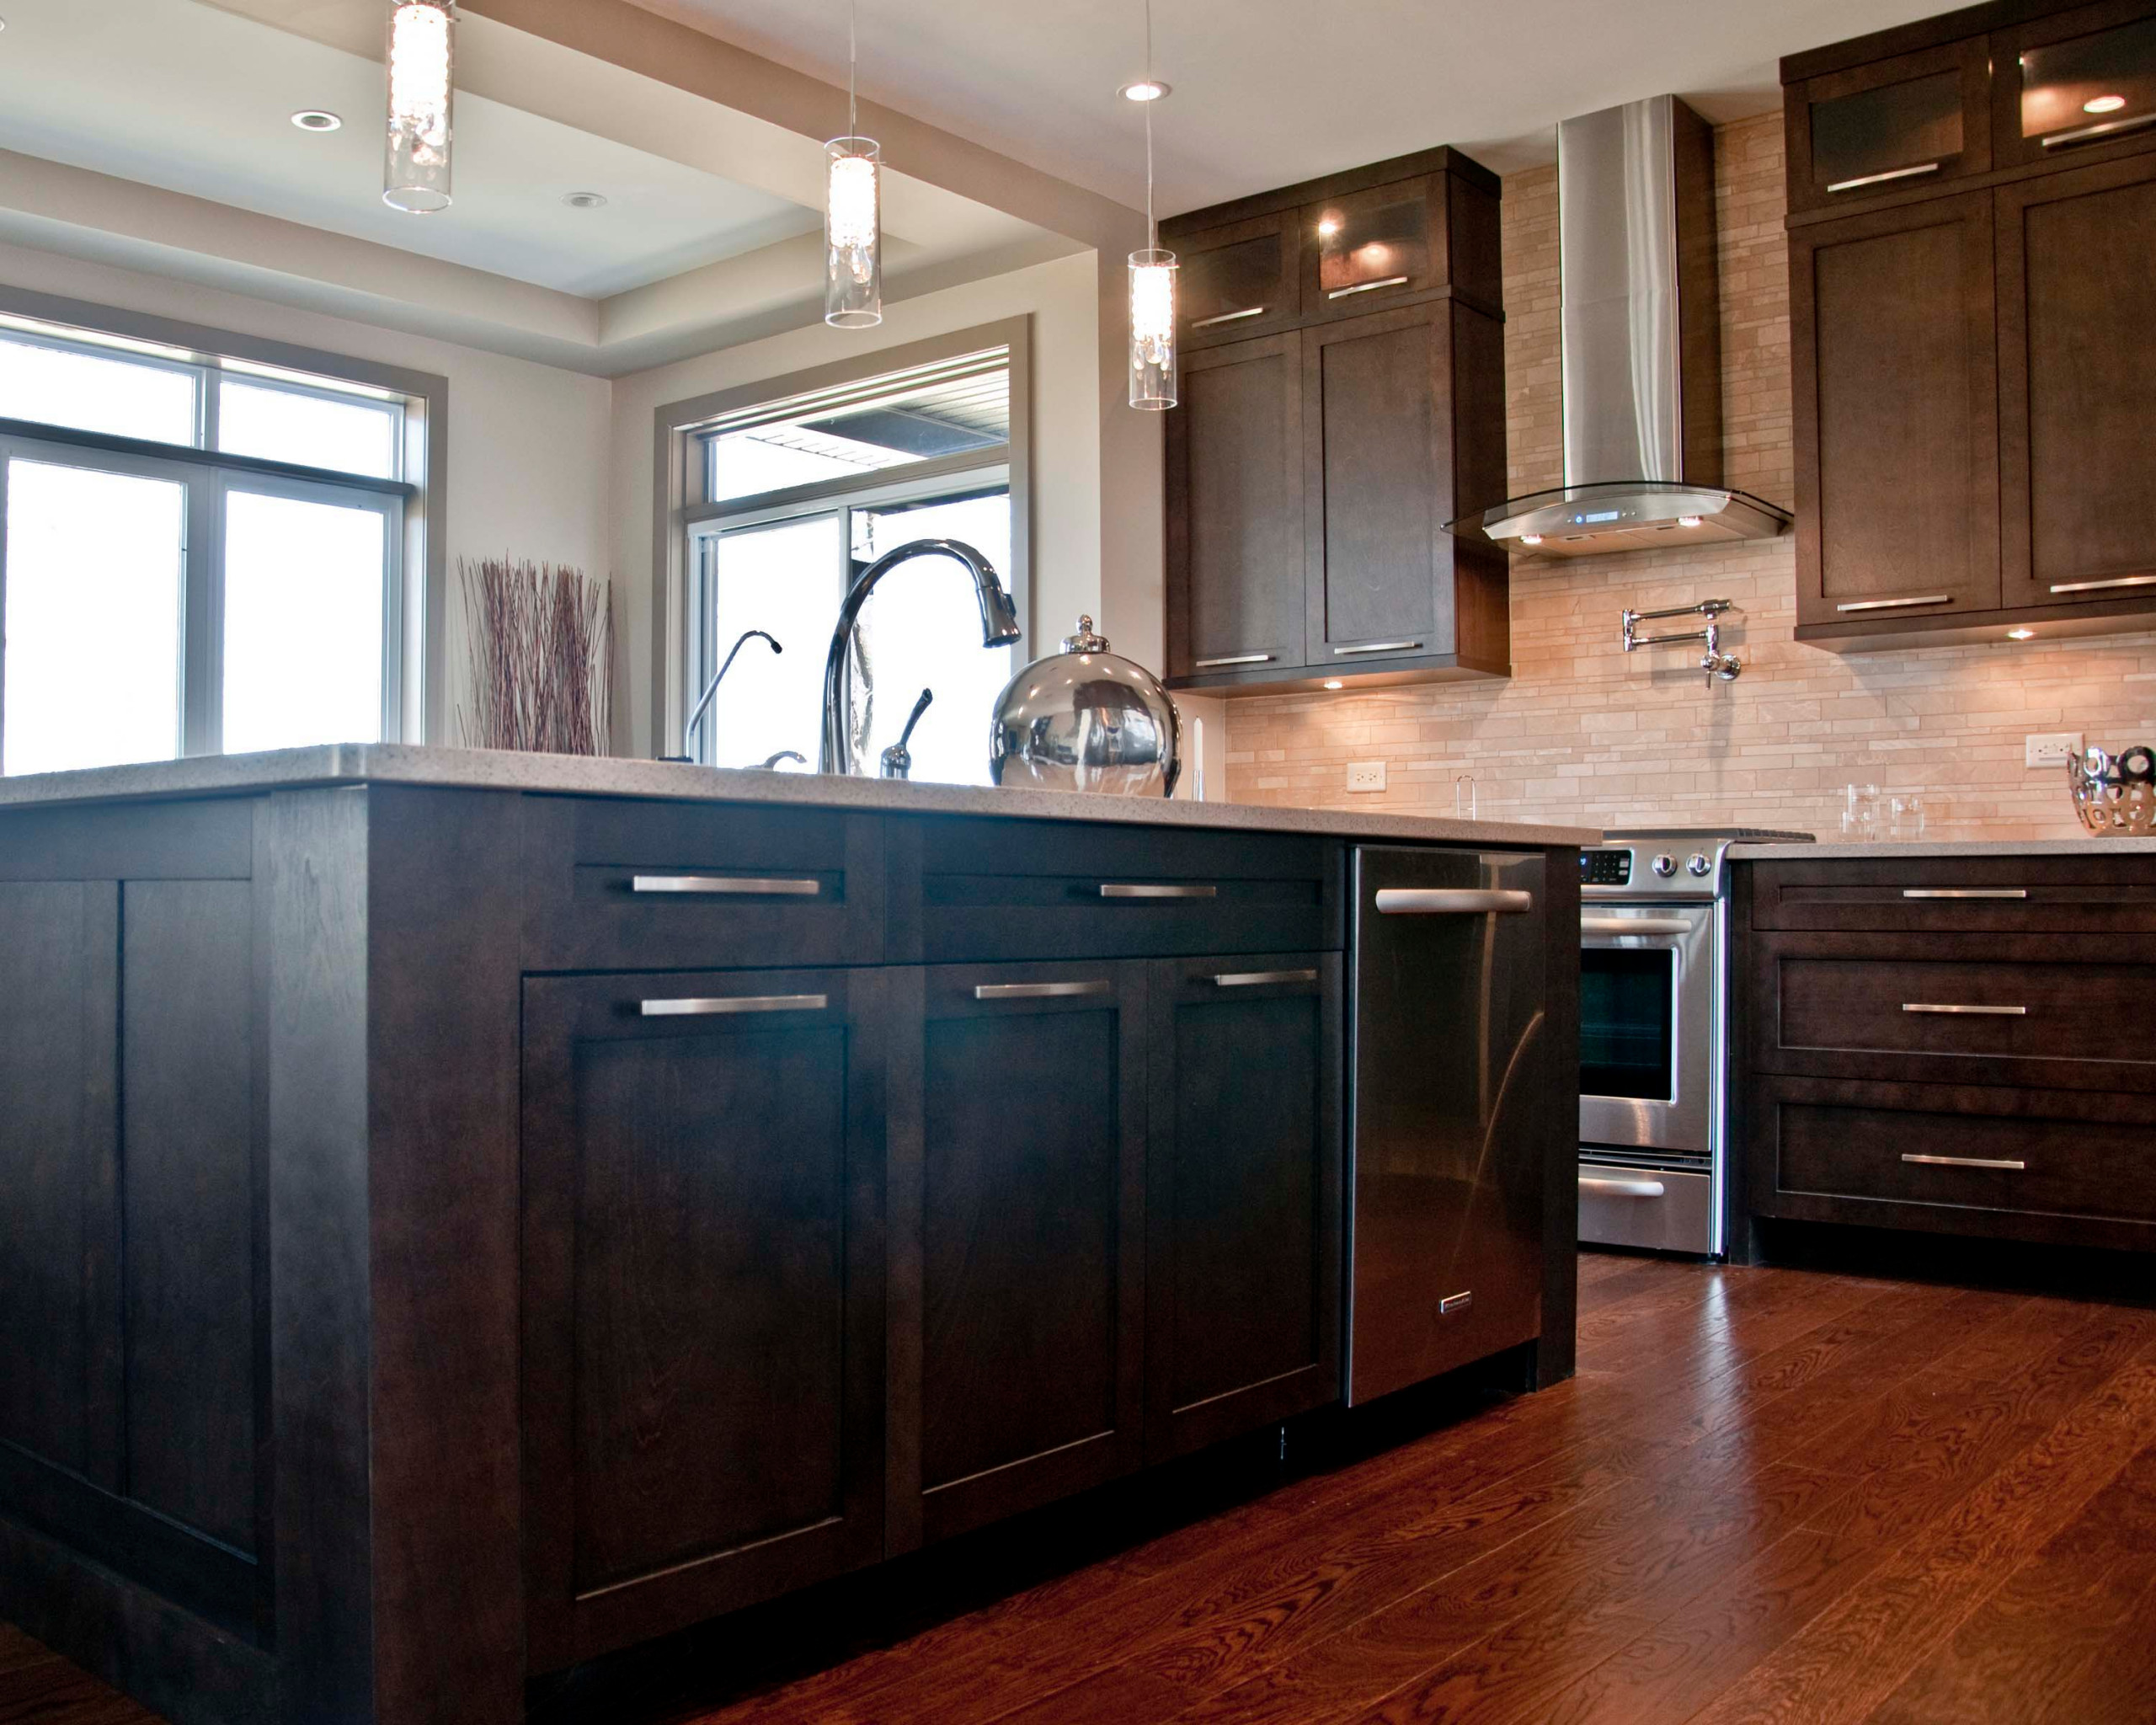 A modern kitchen with flat, wide door pulls for hardware